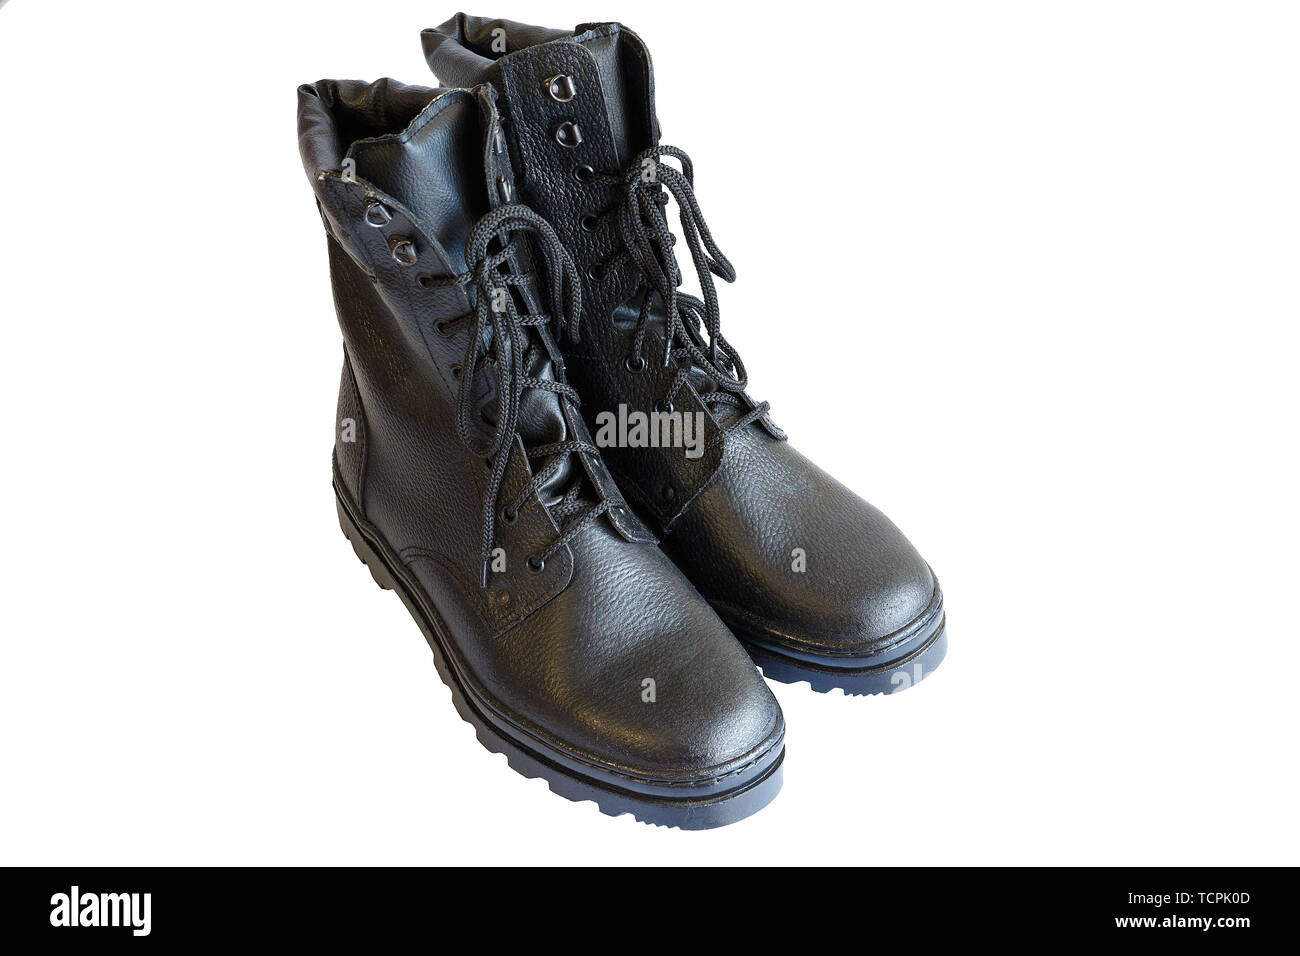 Pair Of Military Boots Stockfotos & Pair Of Military Boots